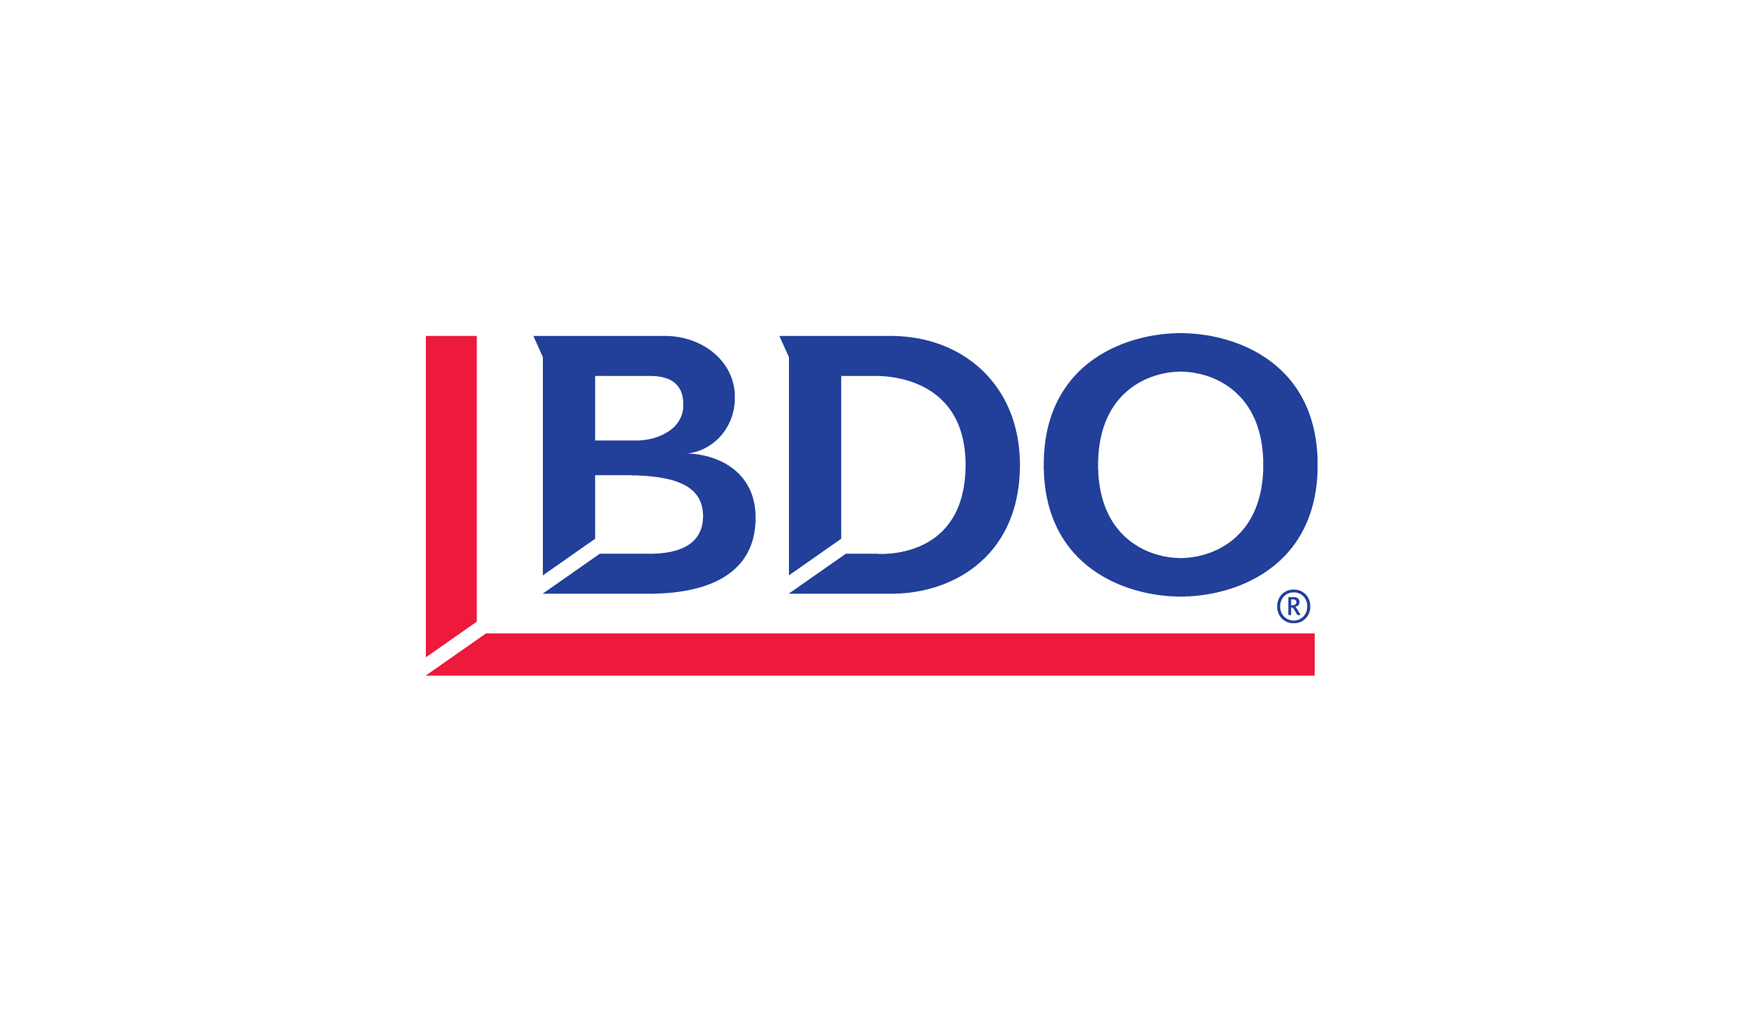 BDO USA - RGB - JPG - High res